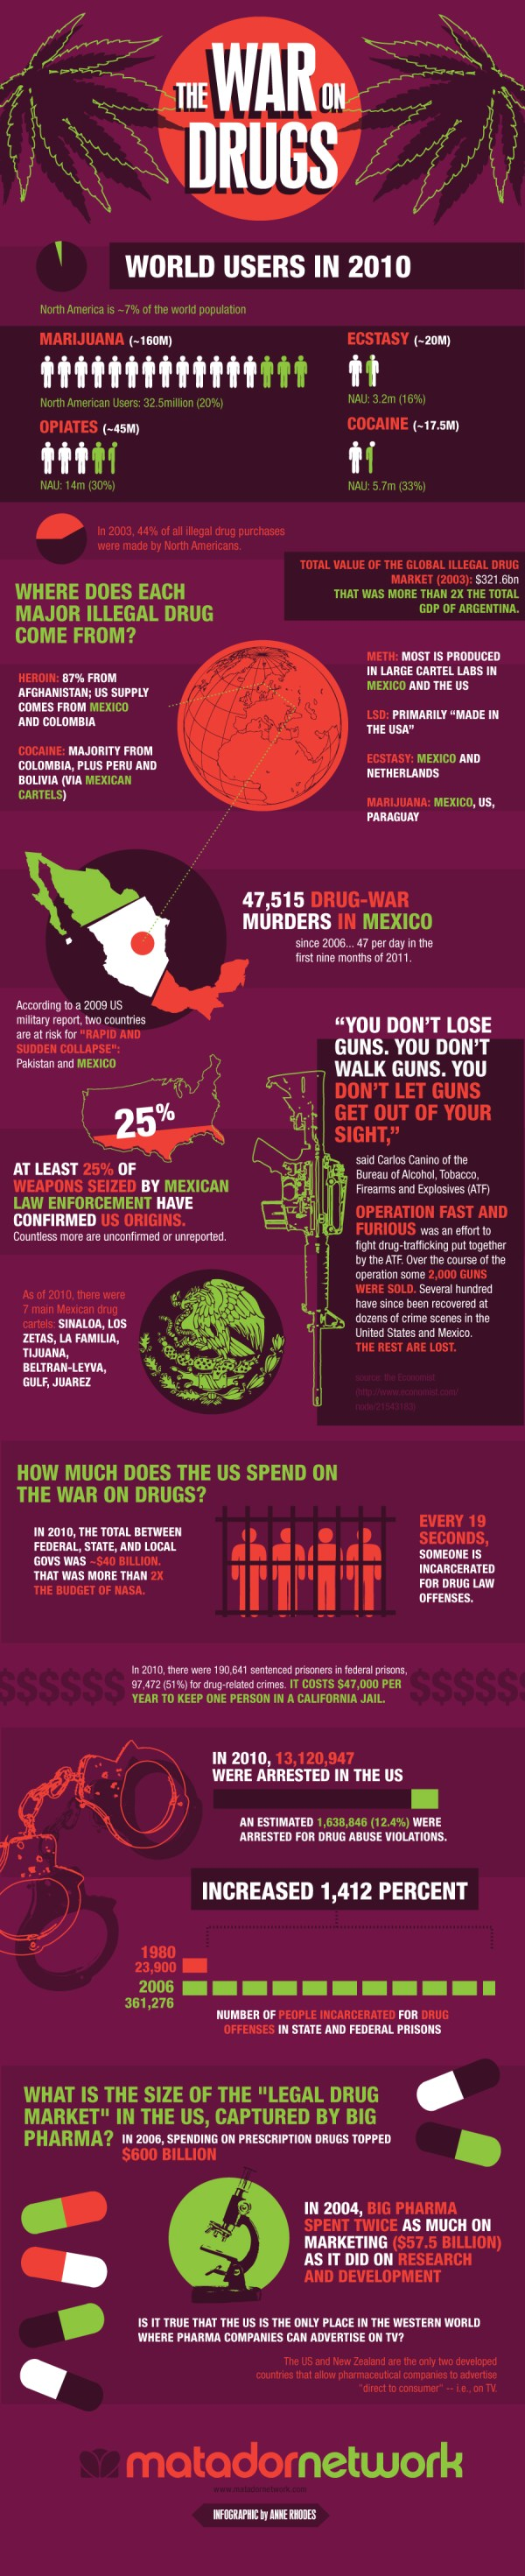 Infographic: Why we're losing the 'War on Drugs'